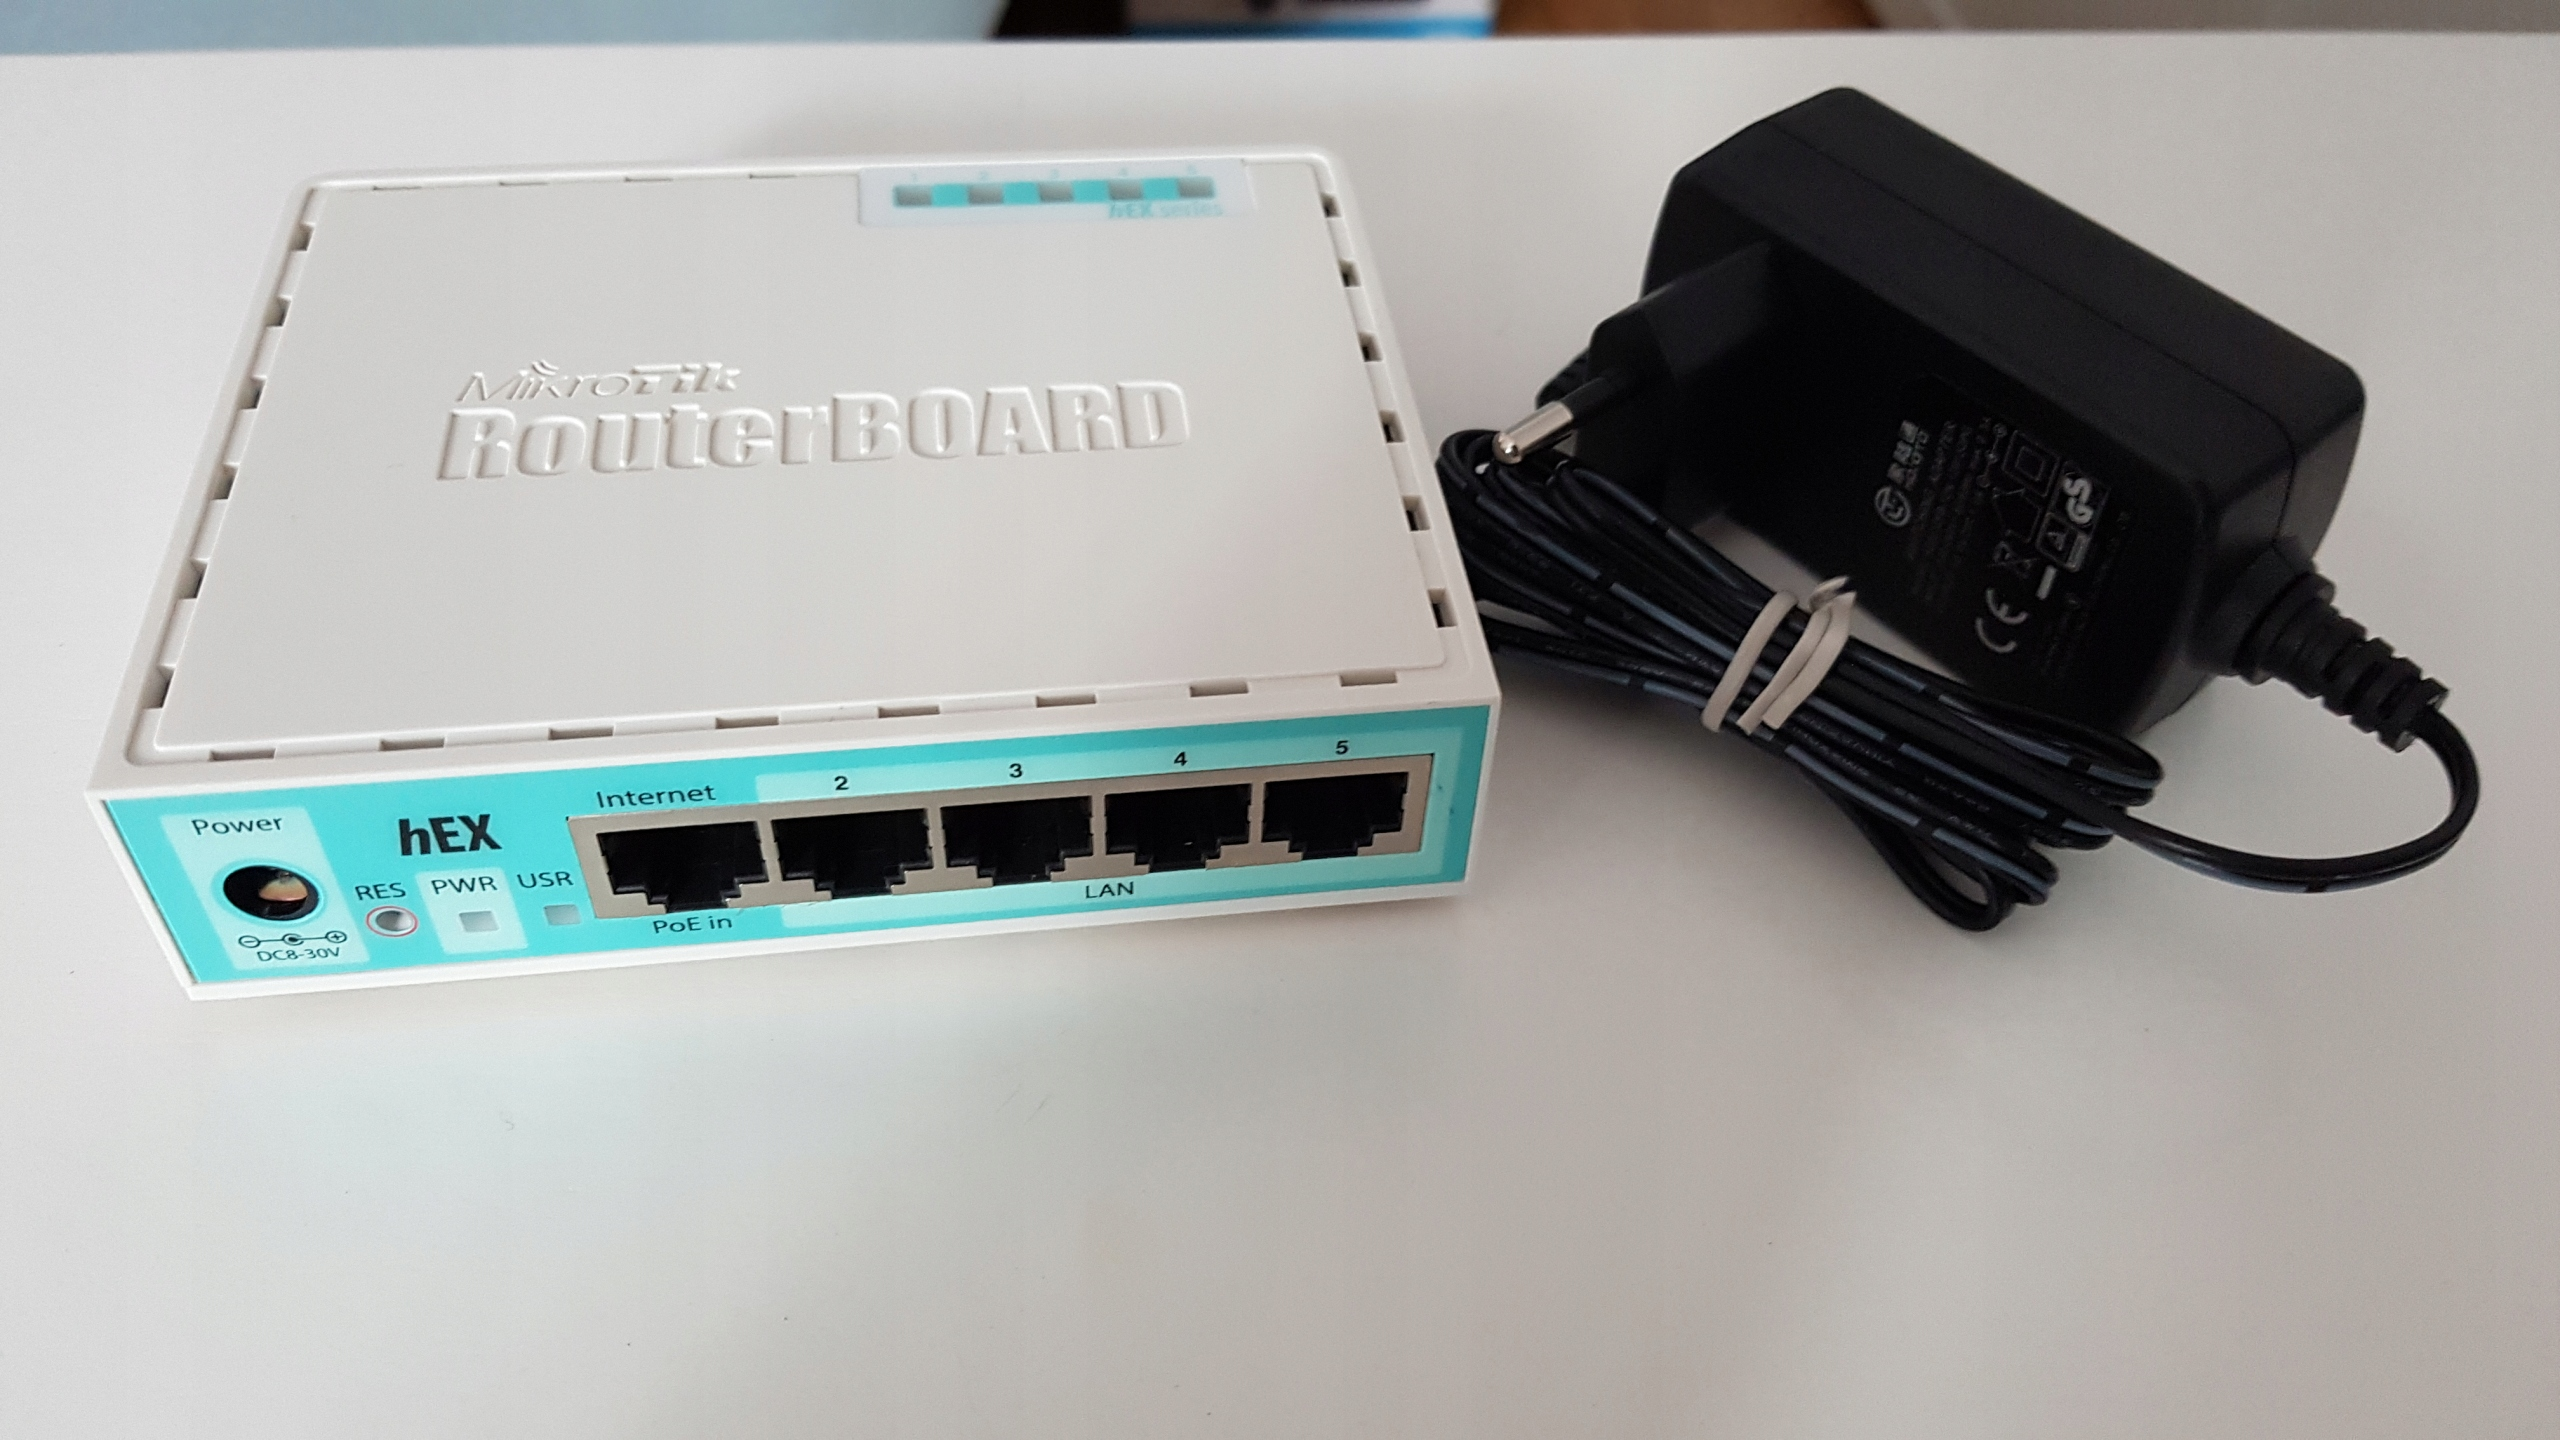 Mikrotik RouterBoard RB750Gr2 hEX 5xGbit